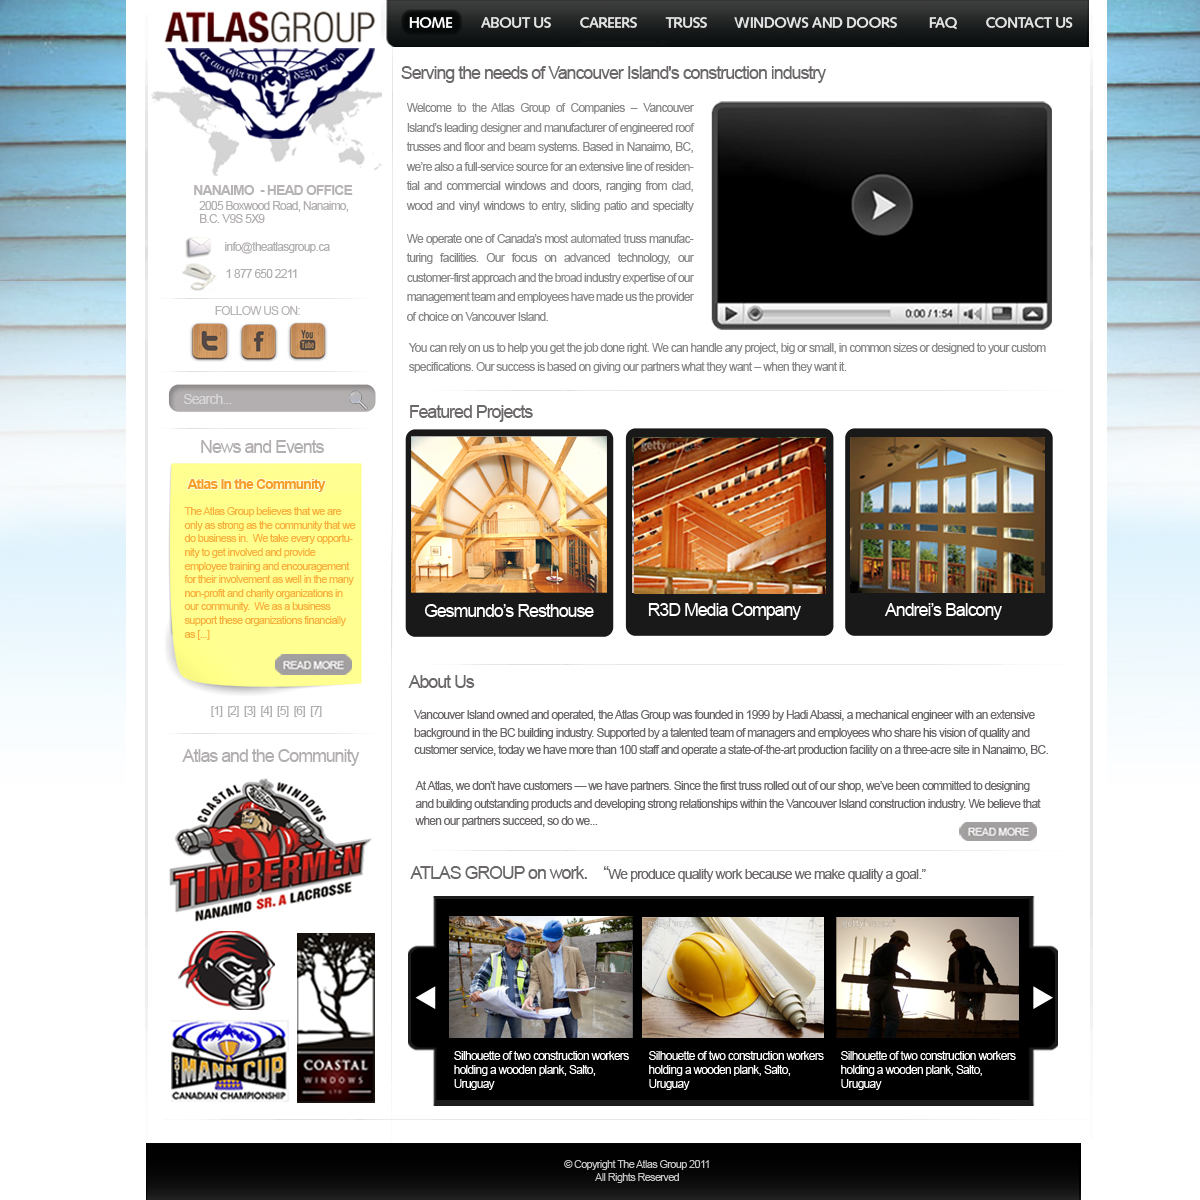 Web Page Design by blackvirus31 - Entry No. 46 in the Web Page Design Contest The Atlas Group Website.